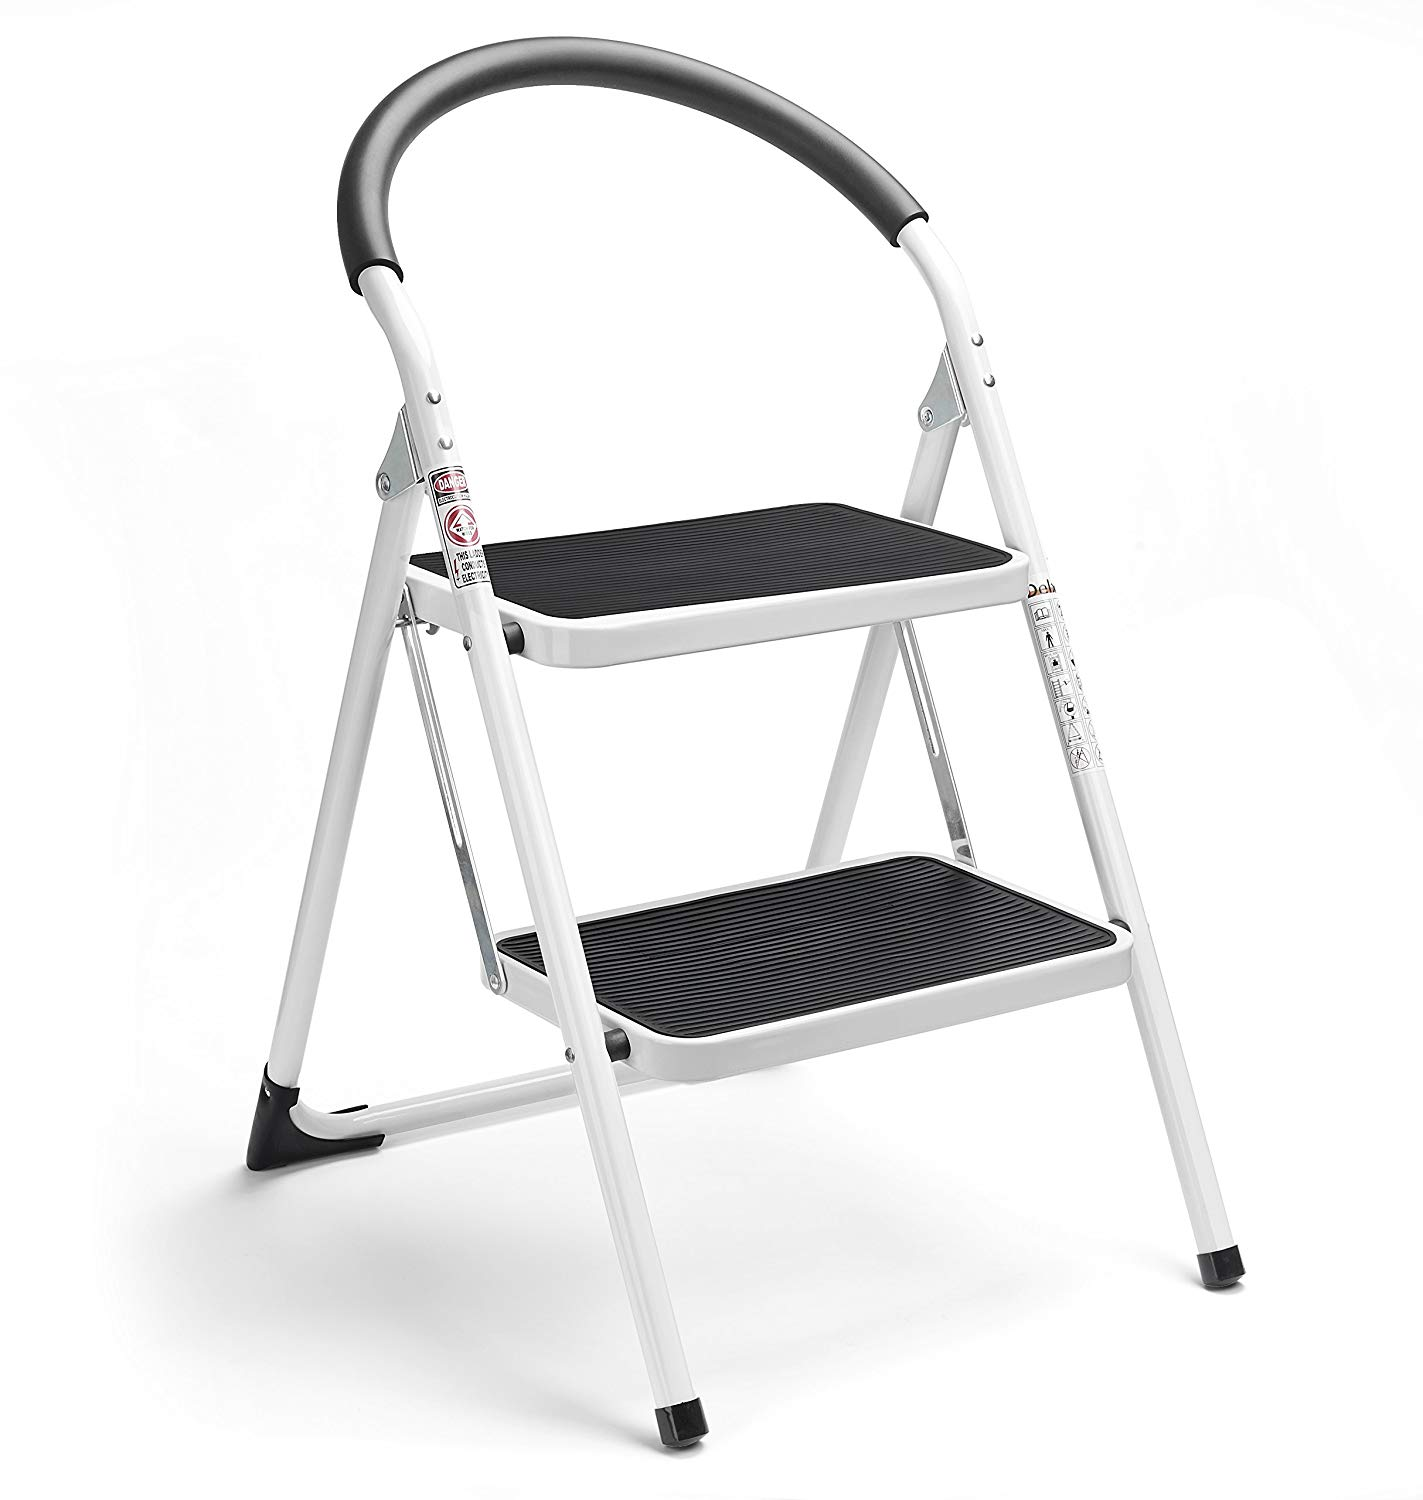 Phenomenal Top 10 2 Step Ladder In 2019 Highly Recommend In 2019 Short Links Chair Design For Home Short Linksinfo